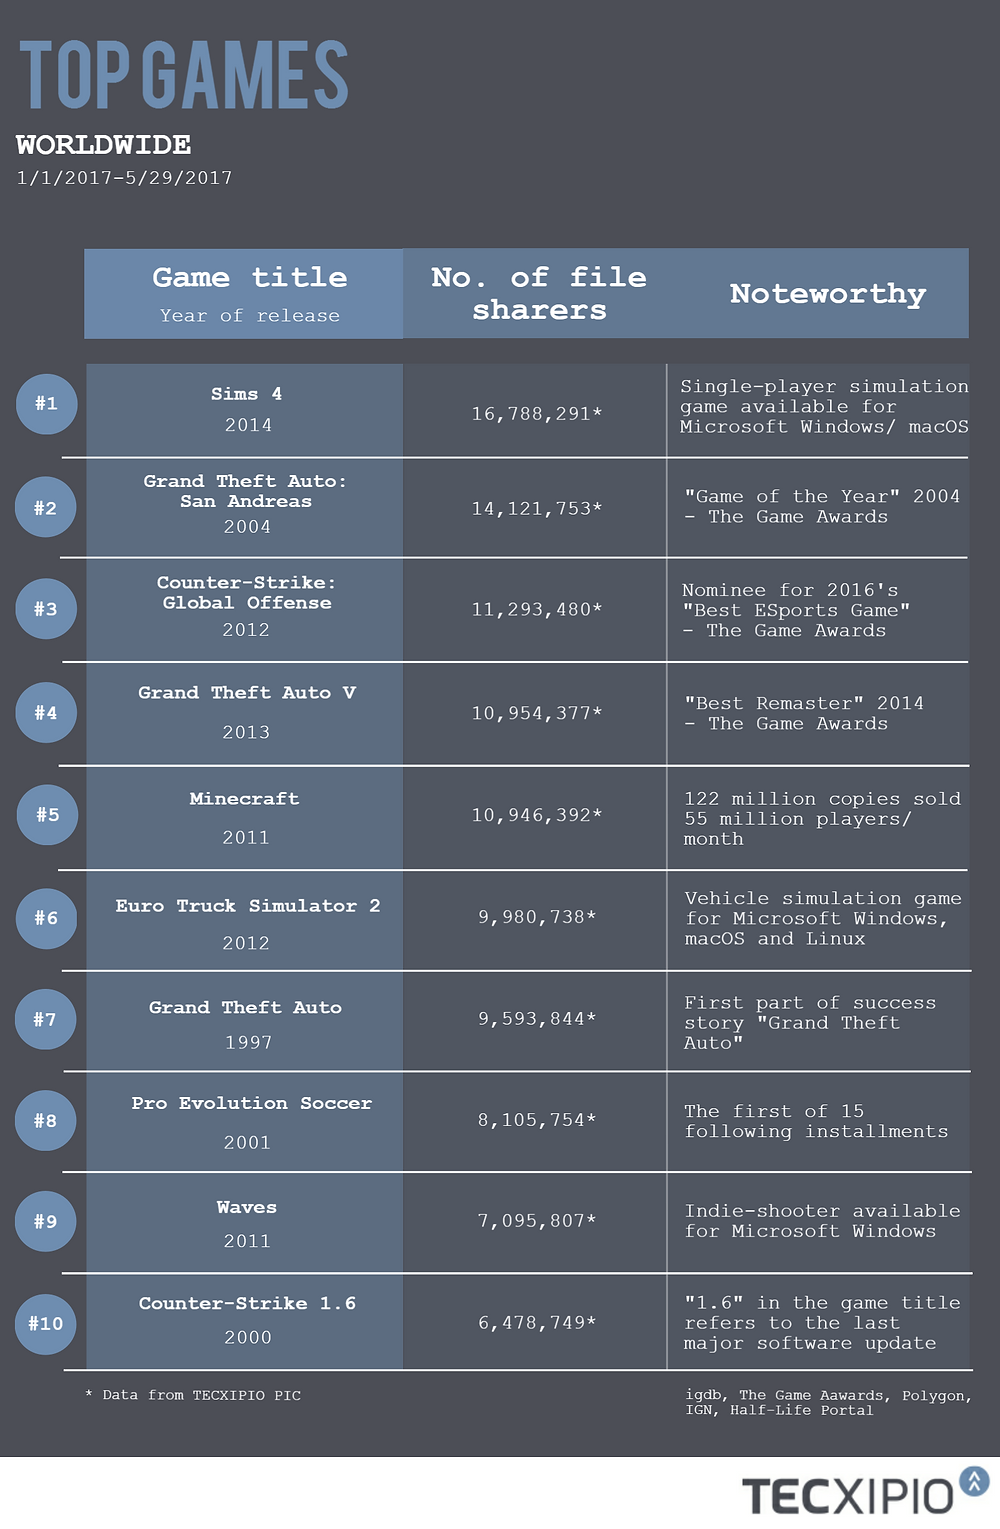 TECXIPIO infographic. Top ten games by number of file sharers